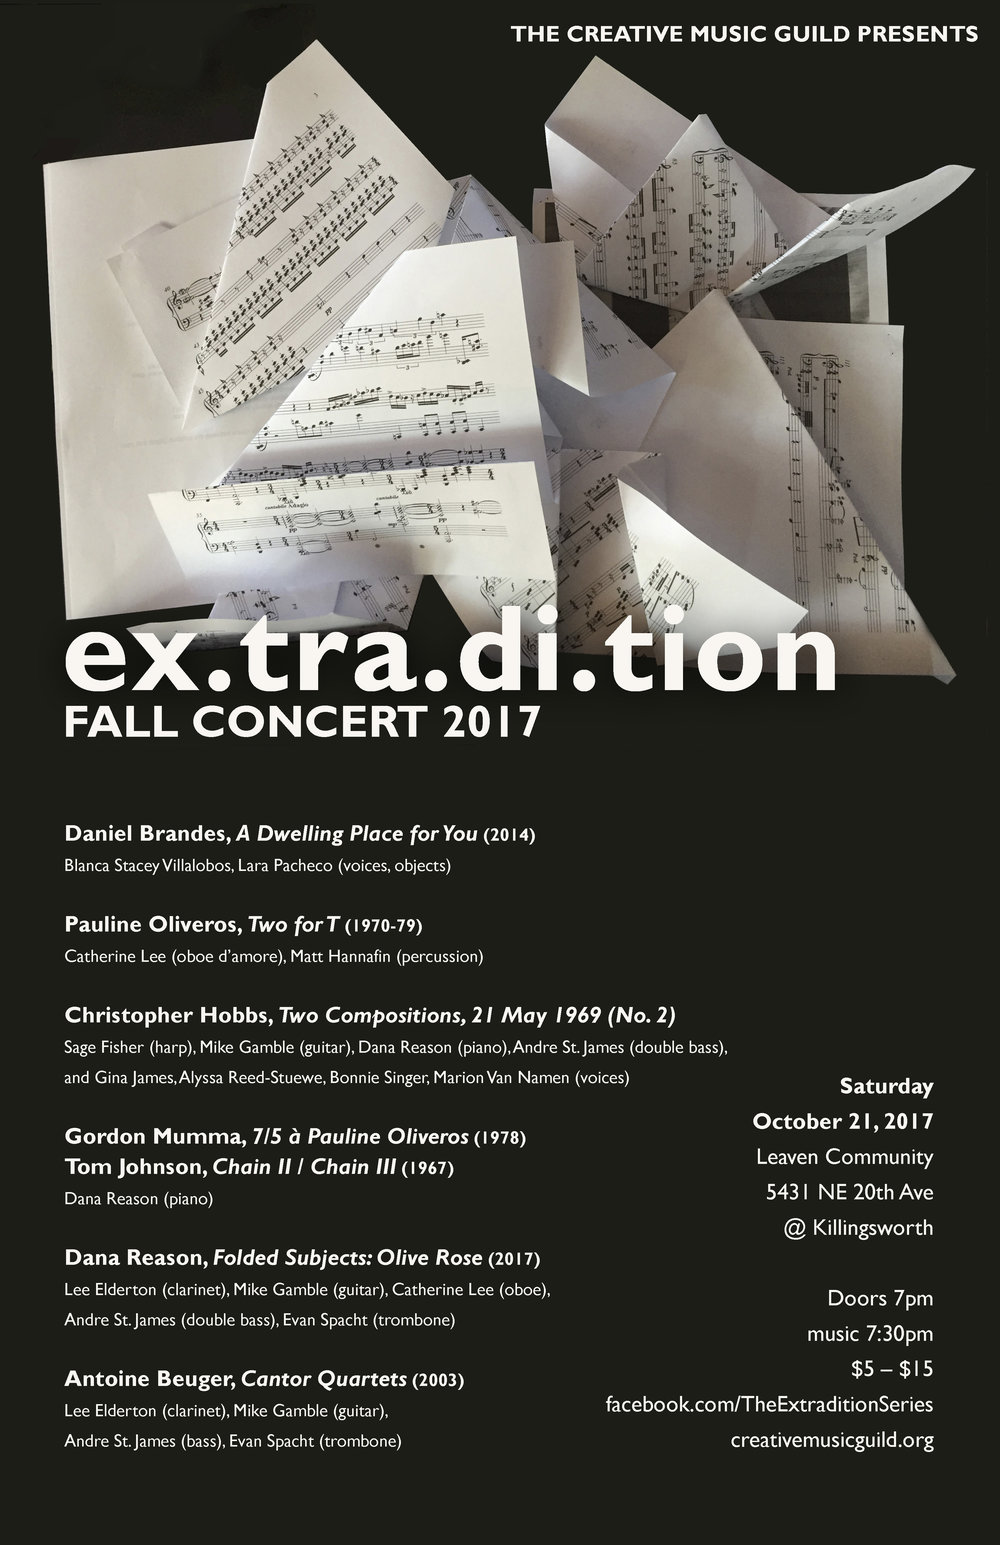 ExtraditionFALL2017poster.jpg